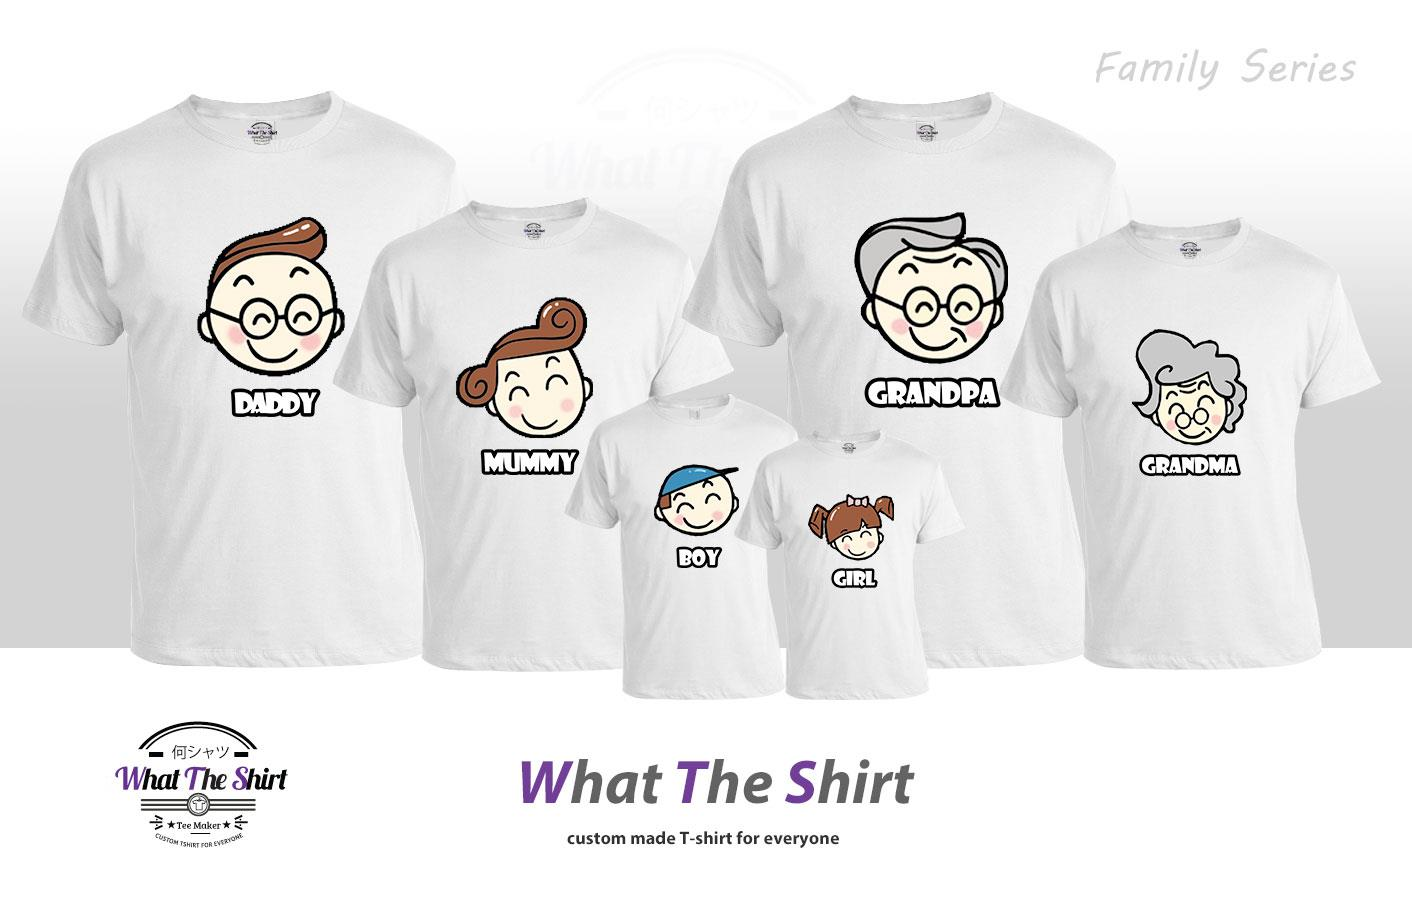 Family Shirt New Year Tshirt Travel Shirt Custom Made 6Pcs